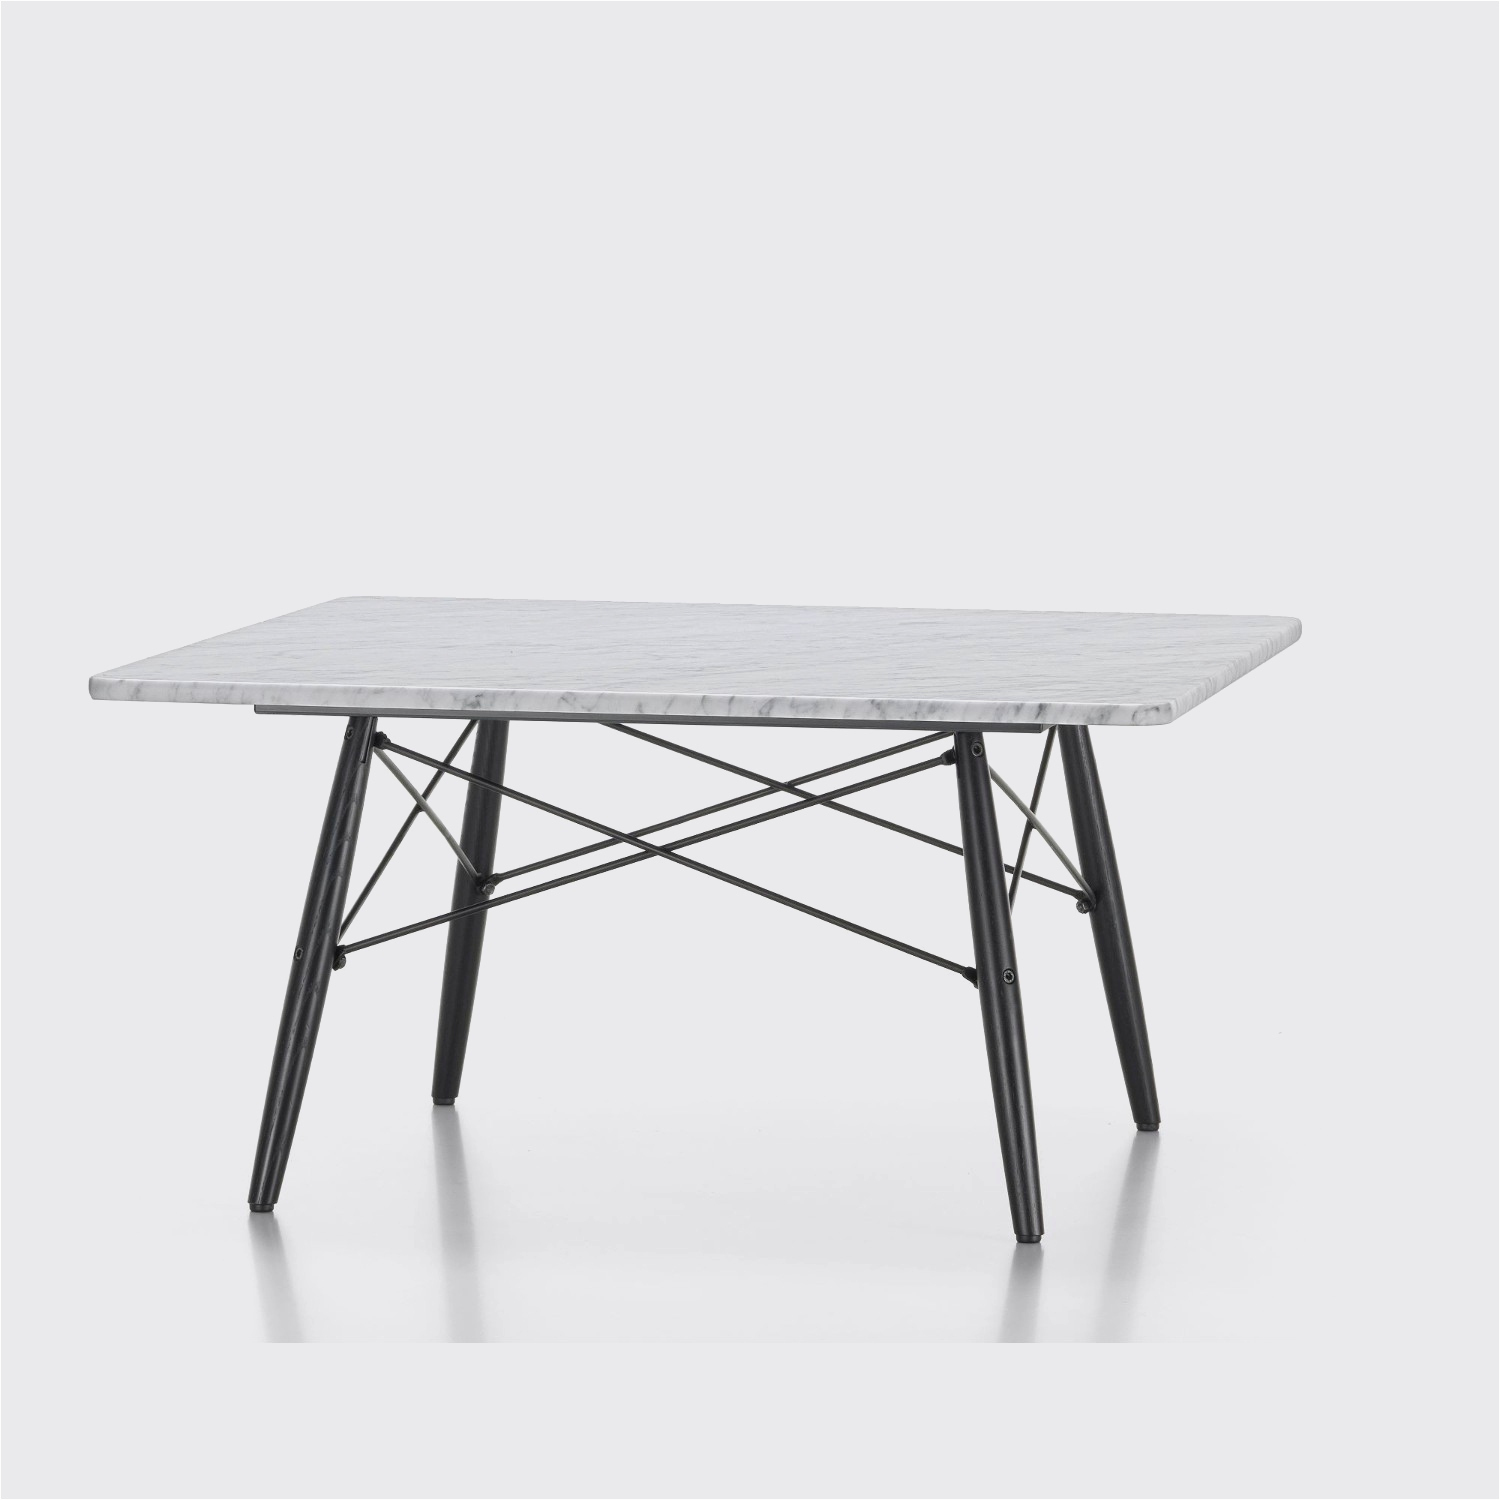 Table Basse Camif Impressionnant Collection Table Basse Marbre Design Beau Fantastiqué Table Basse Marbre Noir